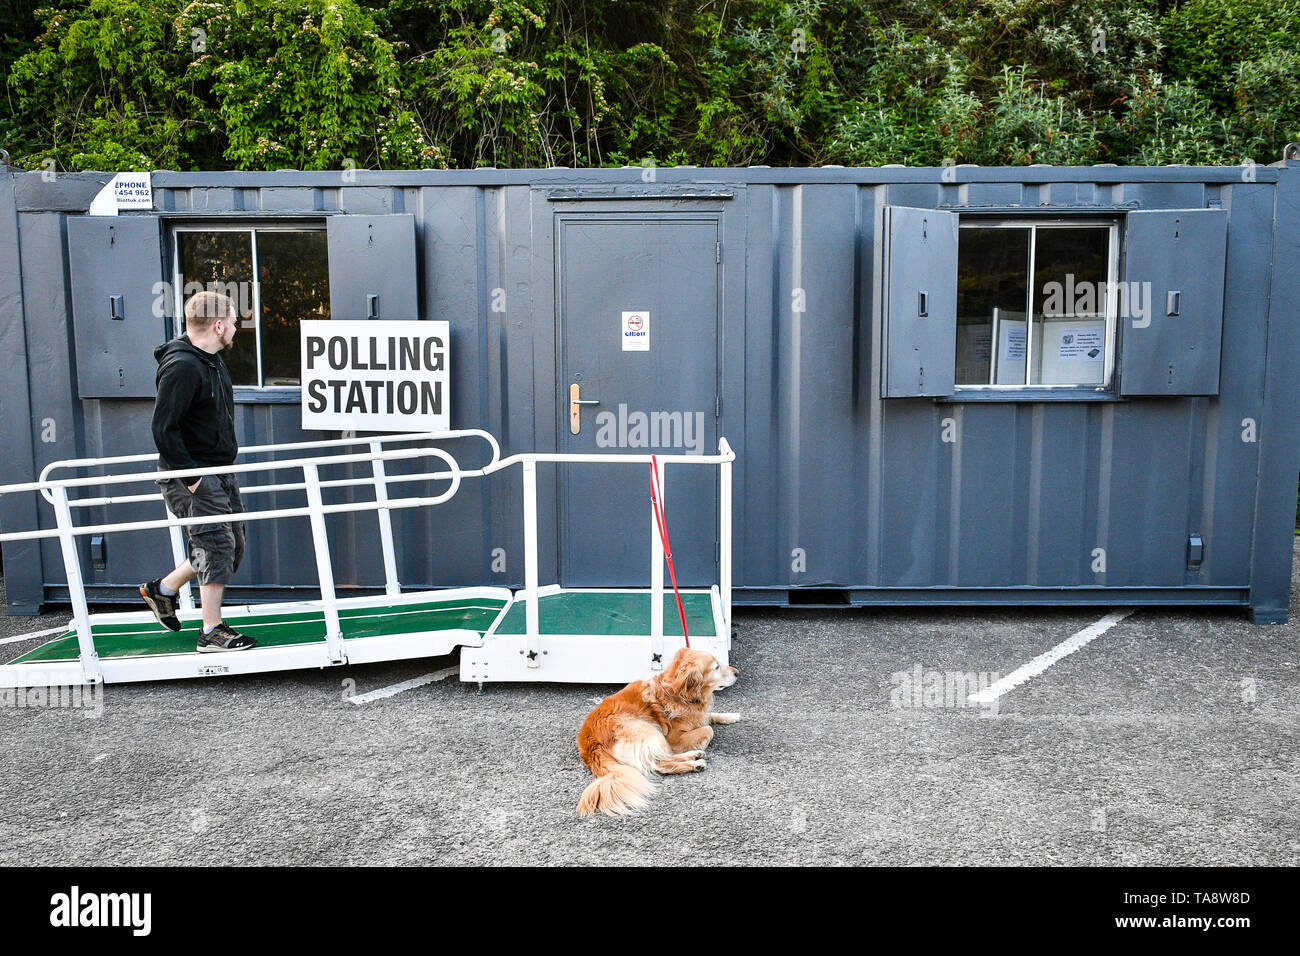 A man enters a portable polling station in Bristol where a dog is tied up waiting for its owner to vote as voters head to the polls for the European Parliament election. - Stock Image